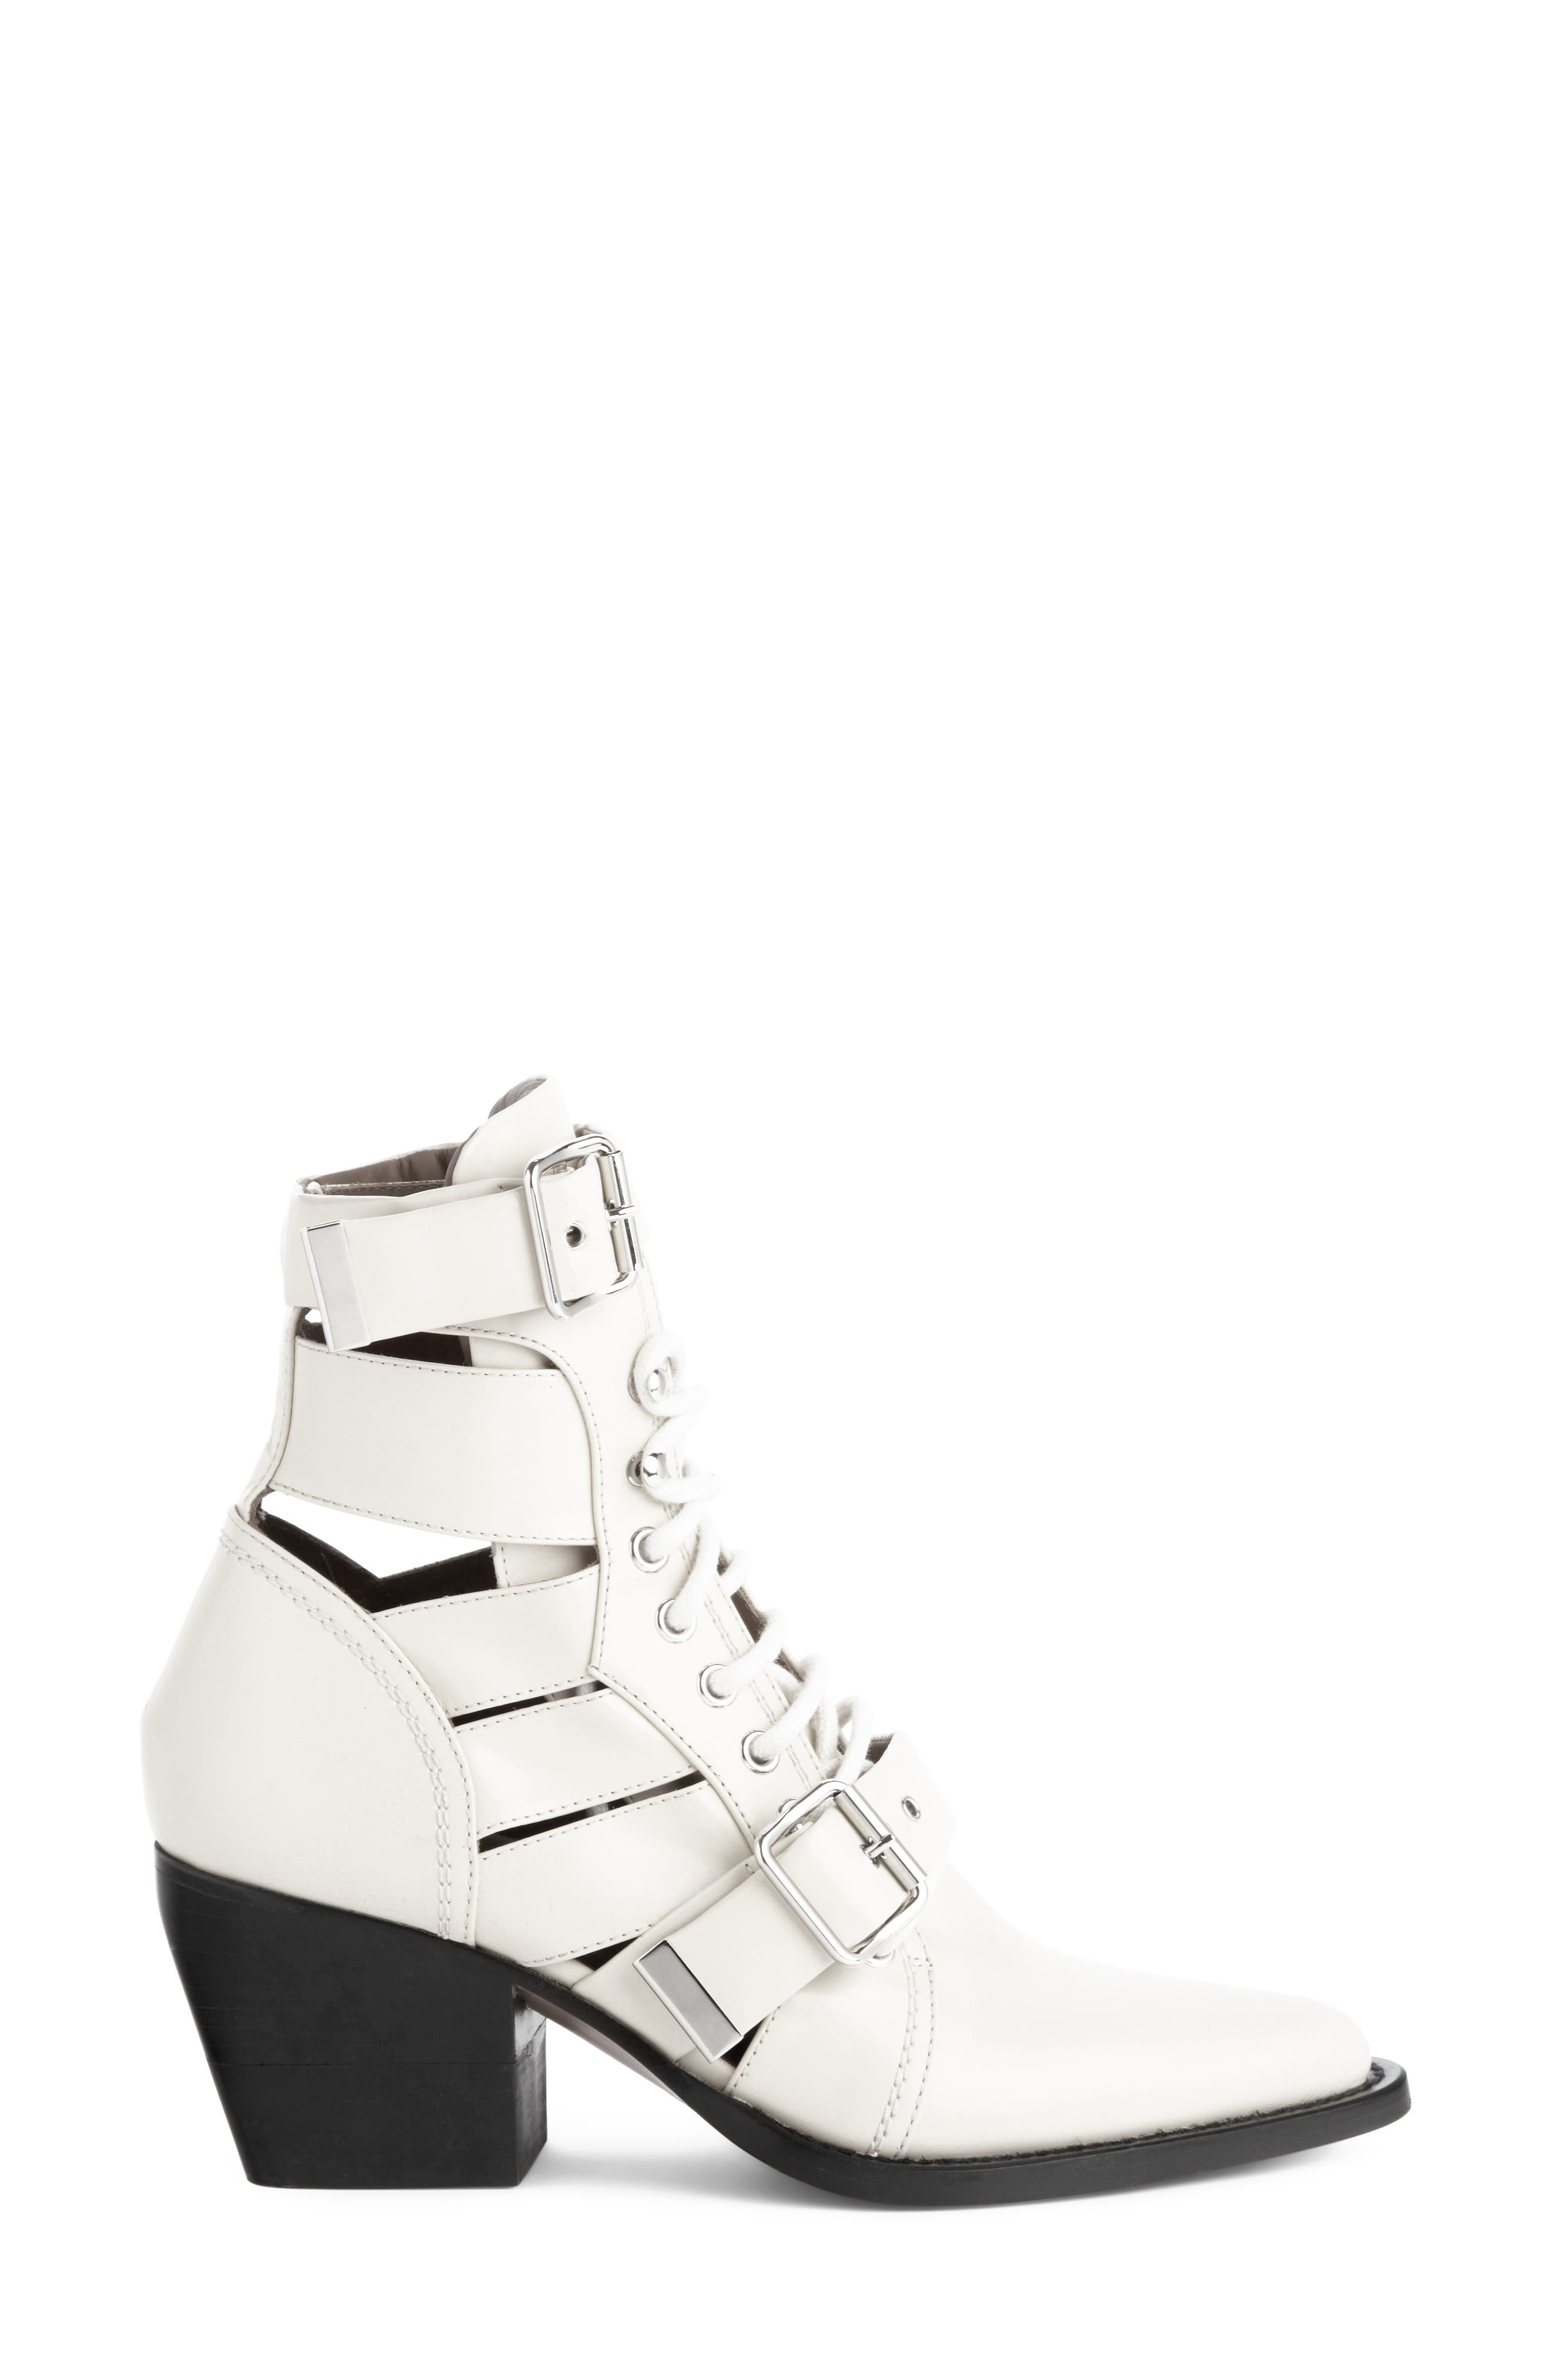 CHLOÉ,                             Rylee Caged Pointy Toe Boot,                             Alternate thumbnail 3, color,                             WHITE